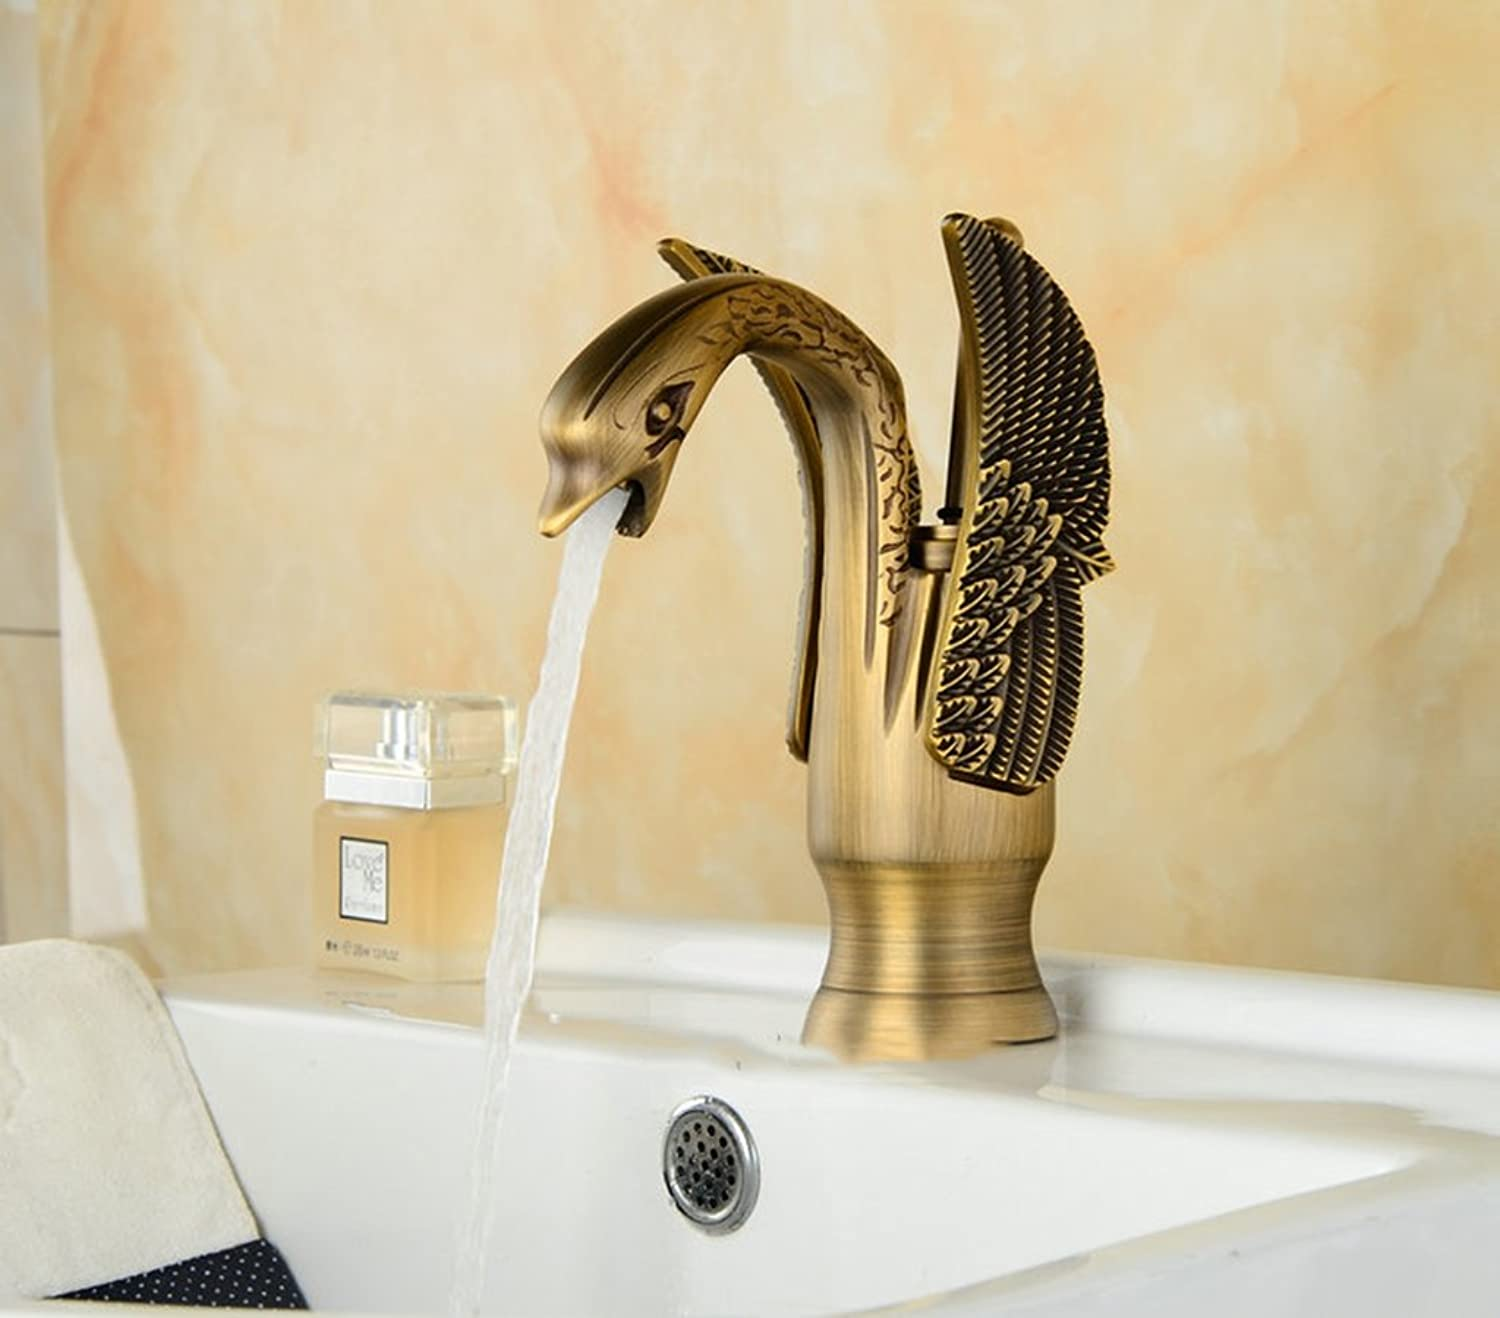 Cqq faucet Full copper swan European style faucet Hot and cold faucet ( color   Imitation Ancient )